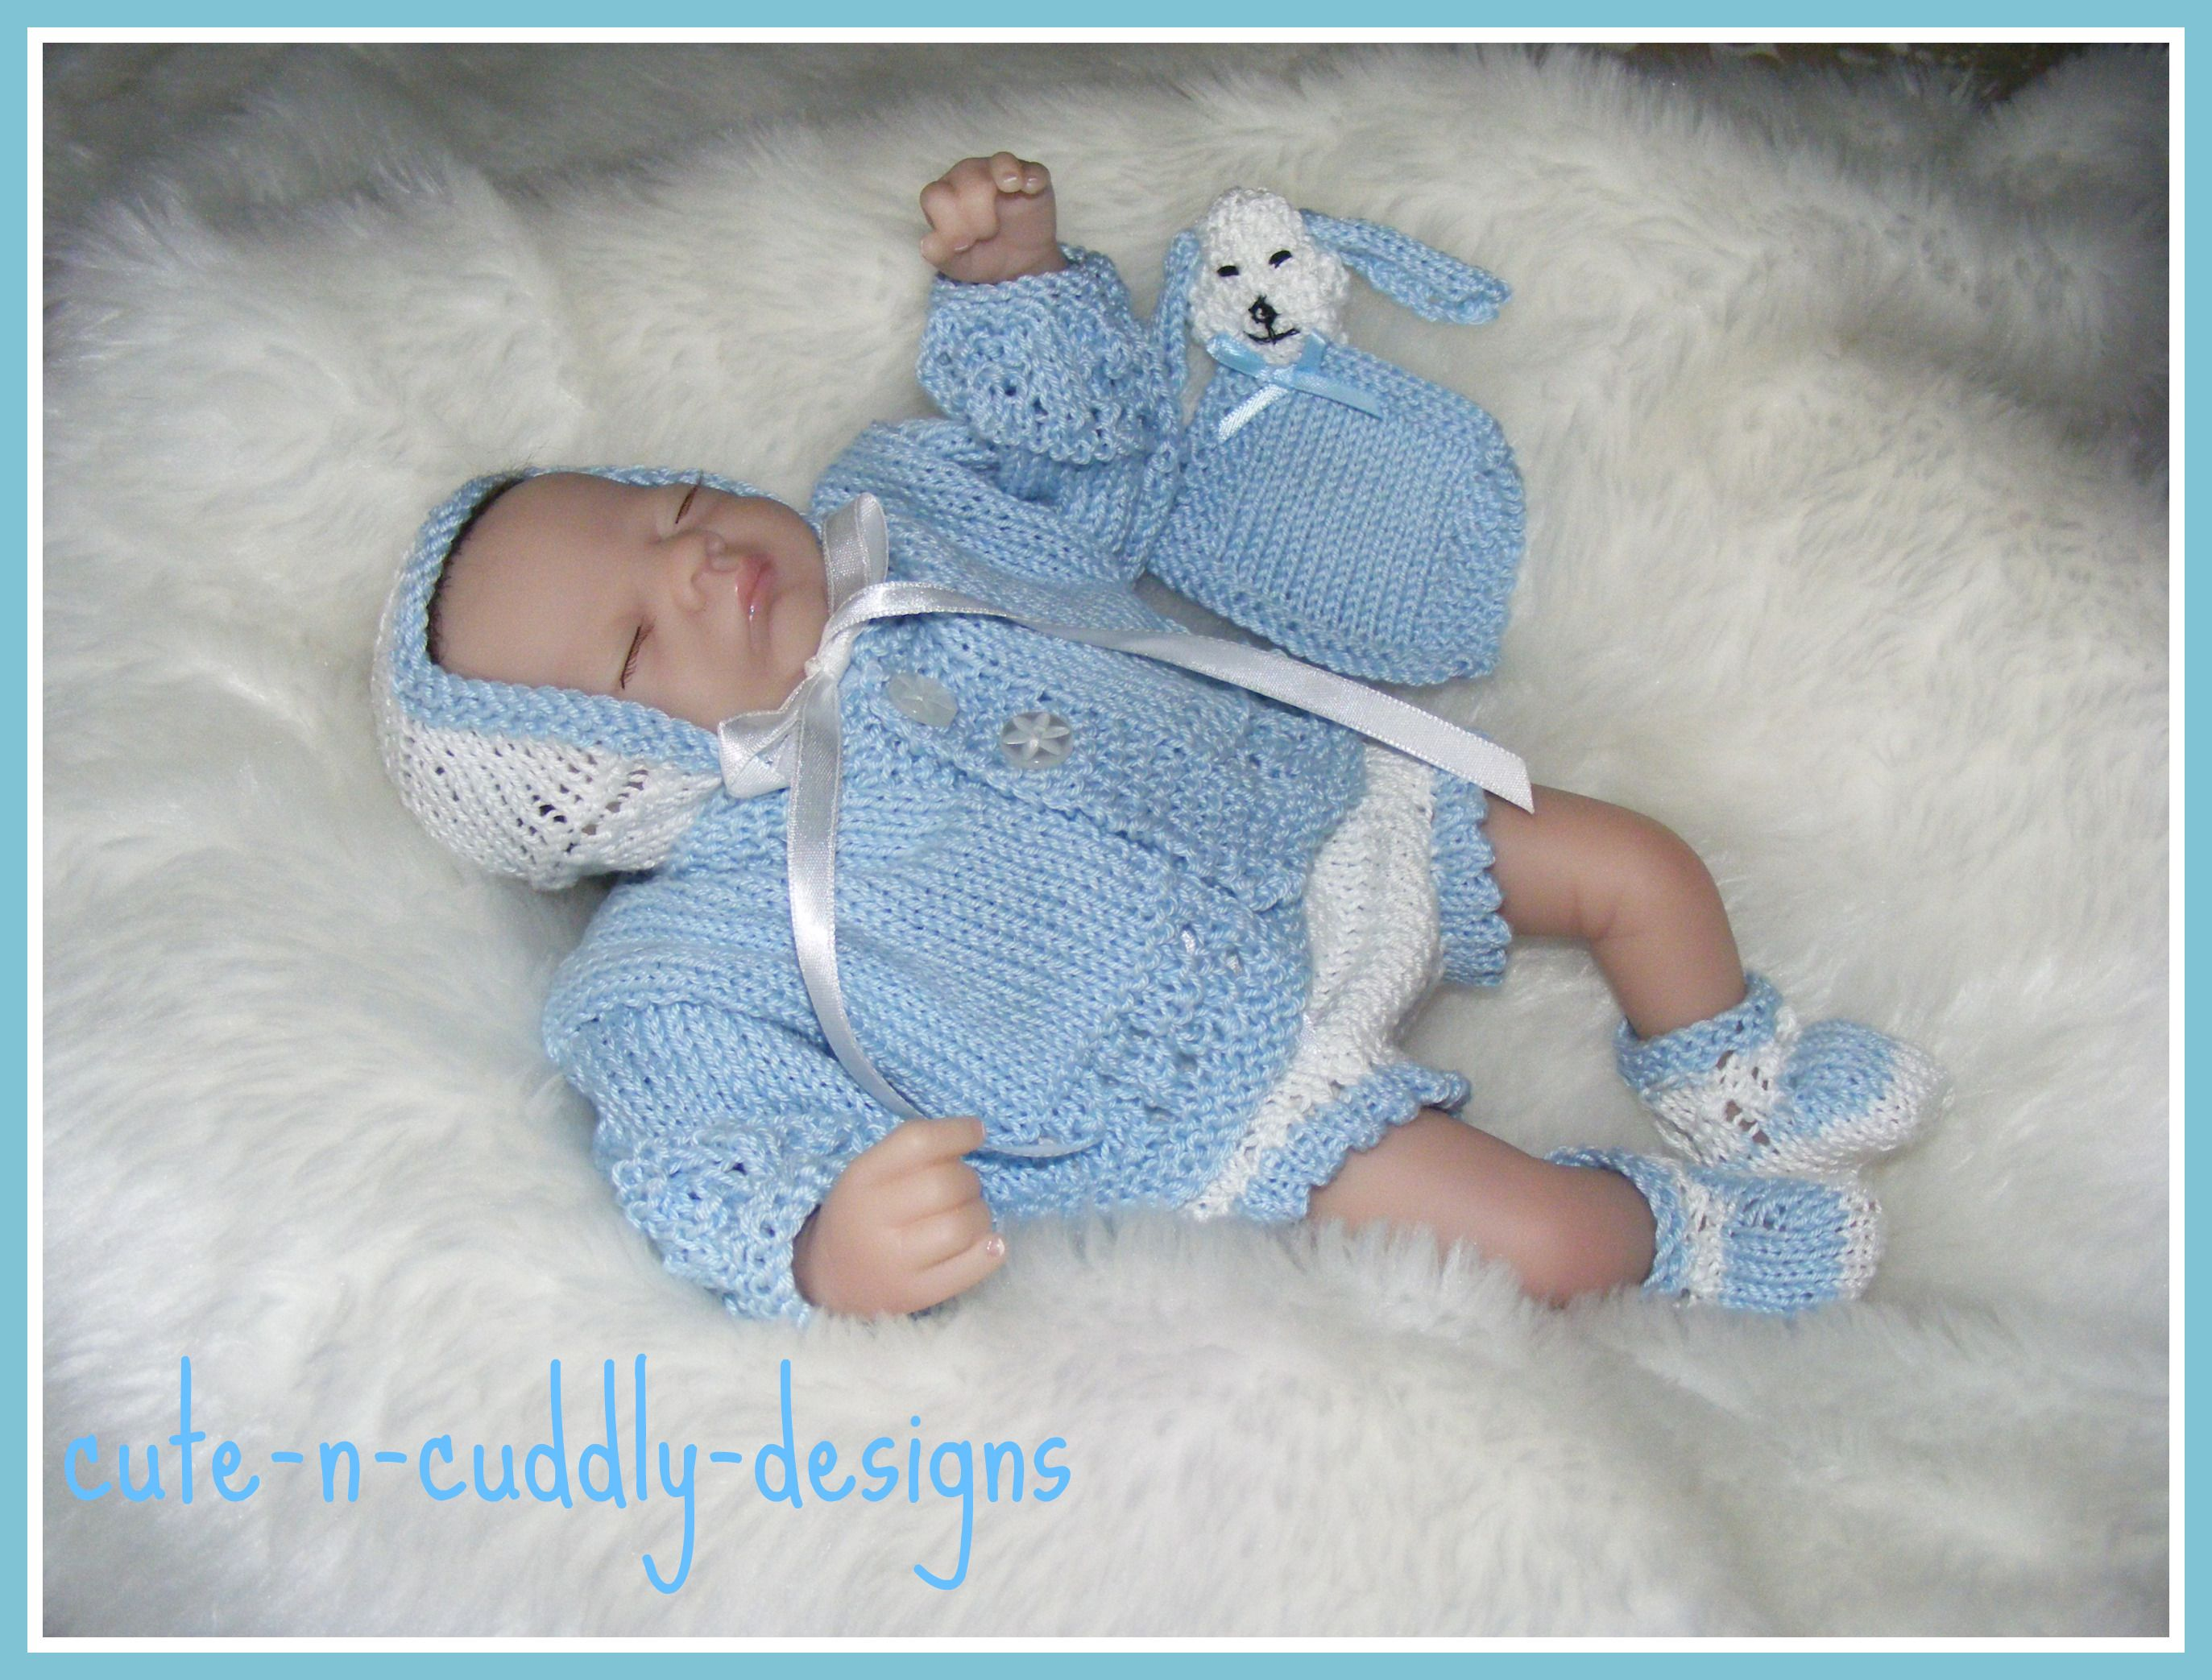 Knitting pattern twice as cute knitting small 2 pinterest reborn and baby knitwear for sale also knitting patterns for babies and dolls clothing bankloansurffo Images